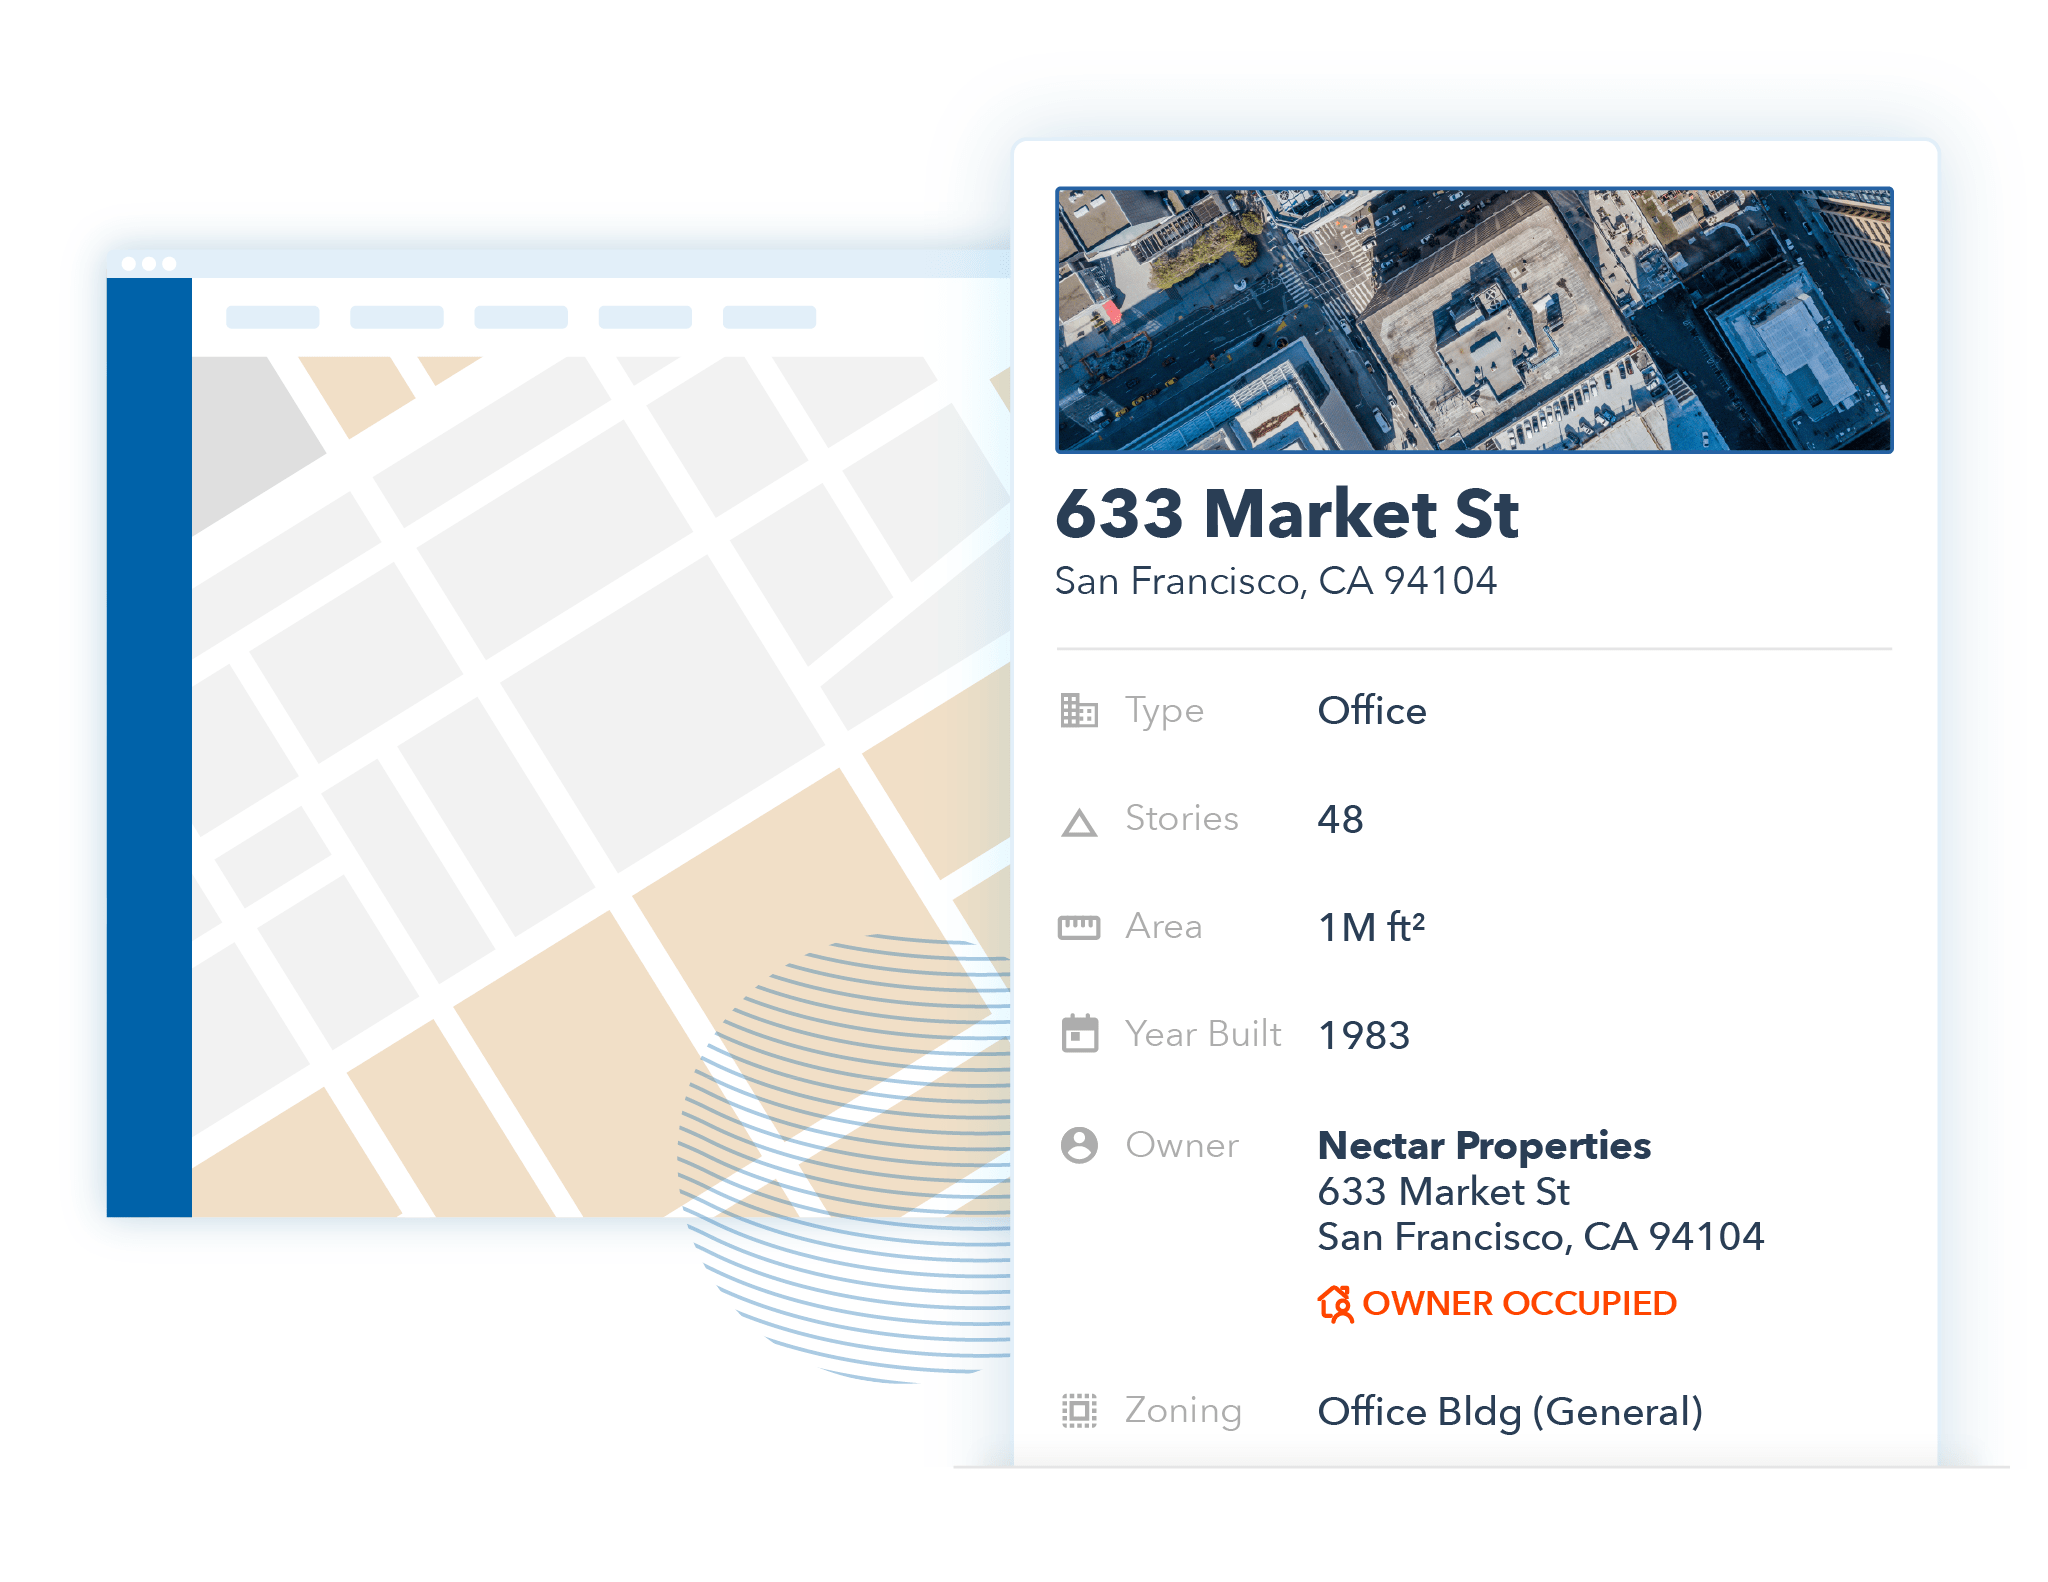 Illustration of the Atlas interface: Property details